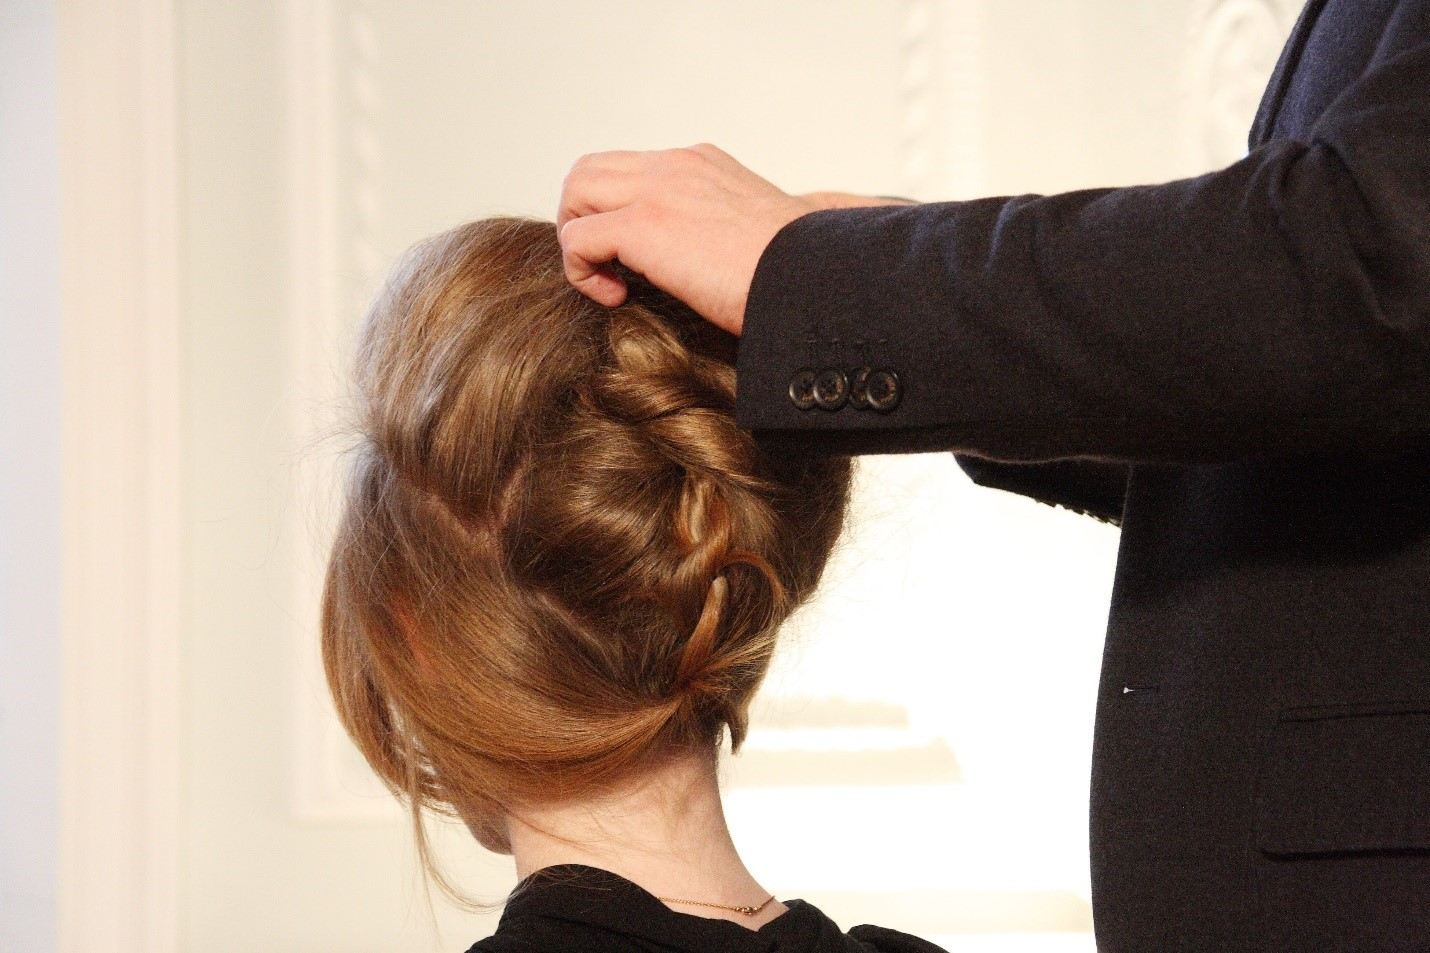 How to choose the right Hairstyle on your wedding day 2.jpg